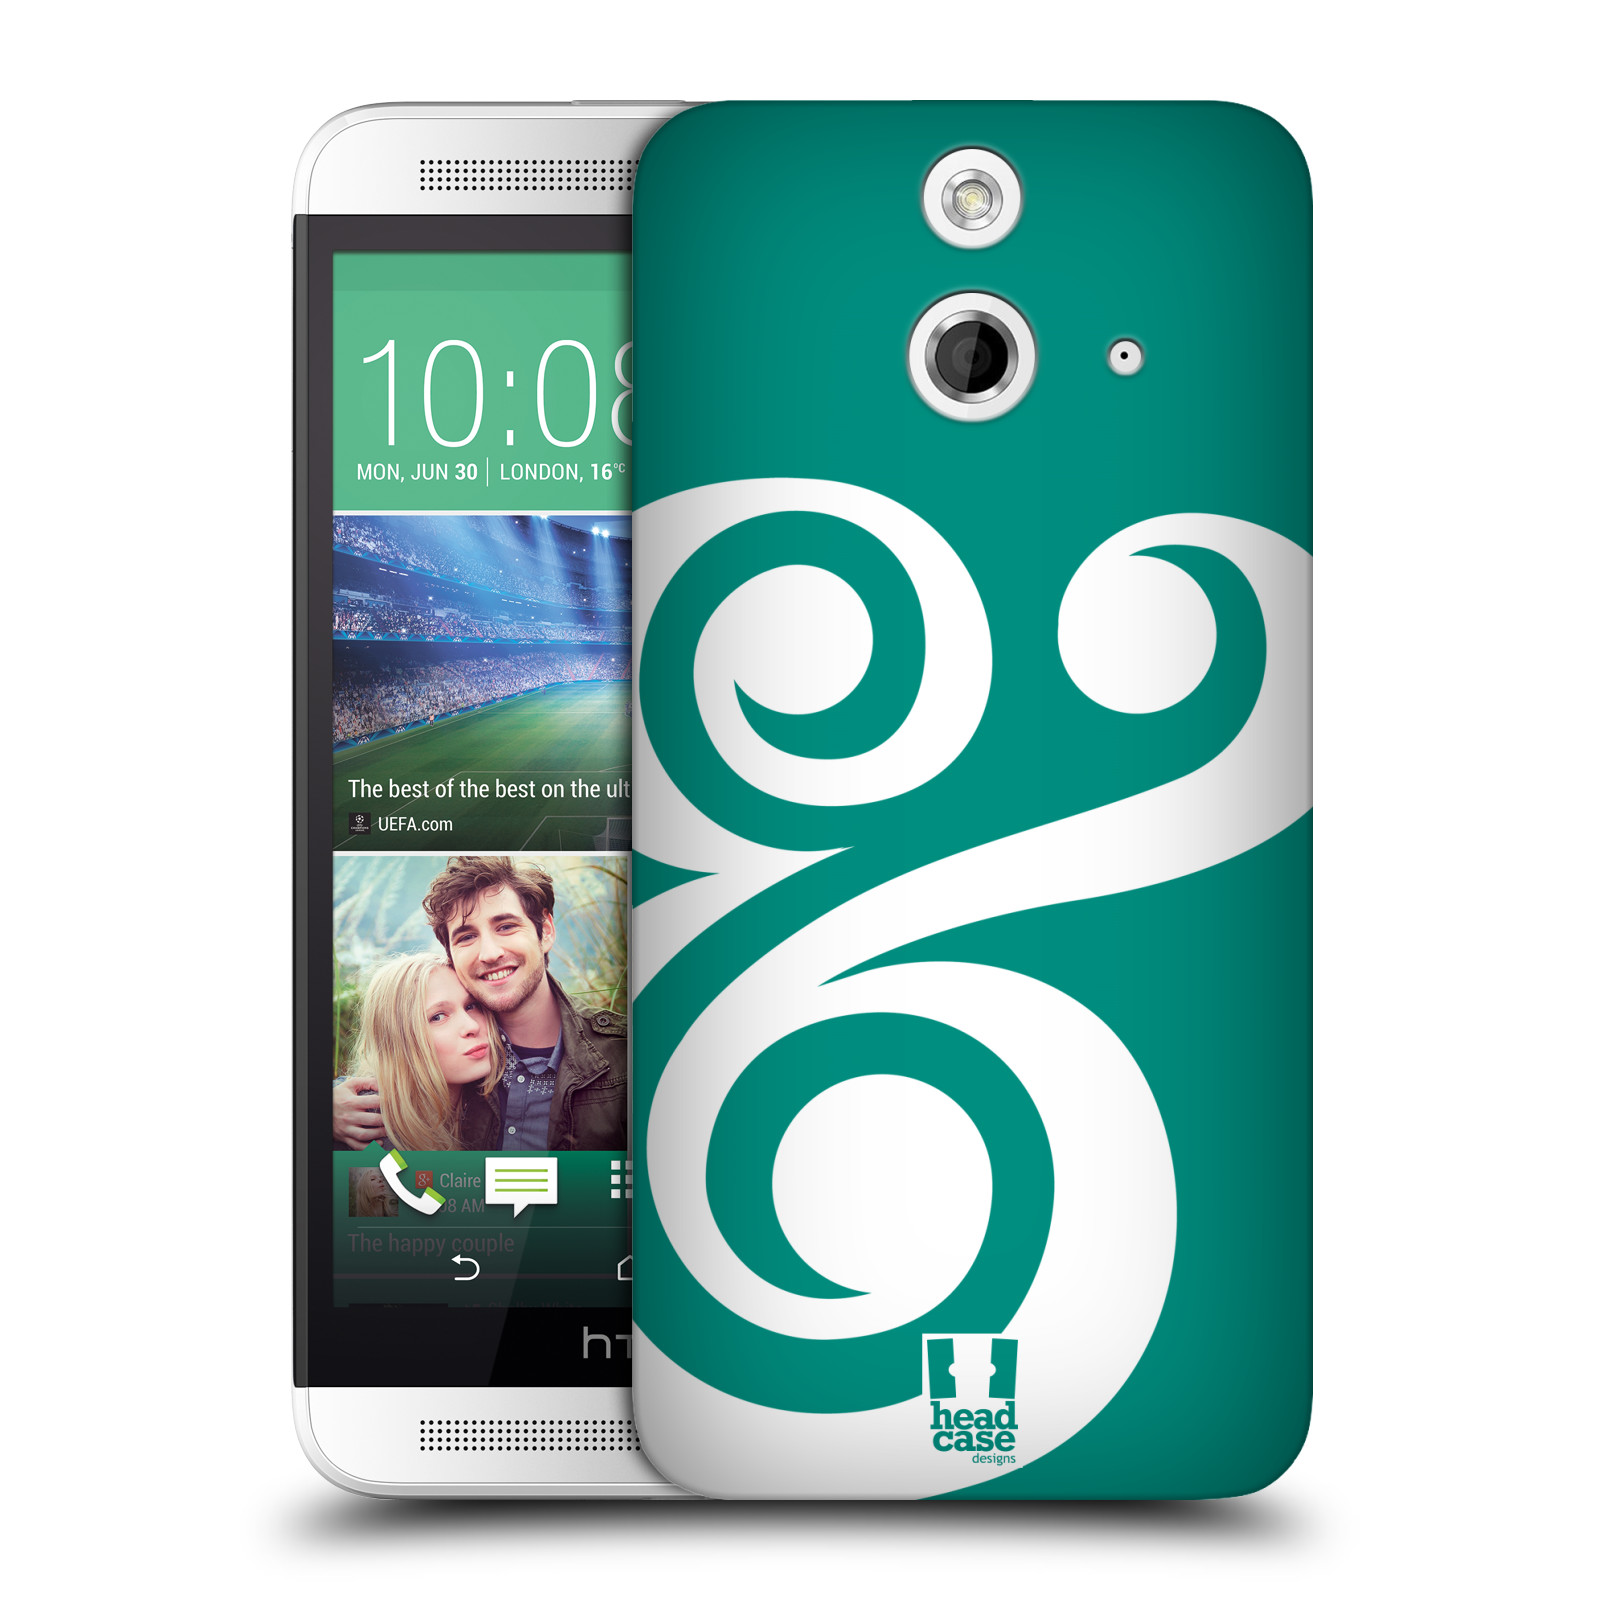 HEAD CASE DESIGNS AMPERSAND LOVE HARD BACK CASE FOR HTC ONE E8 DUAL SIM